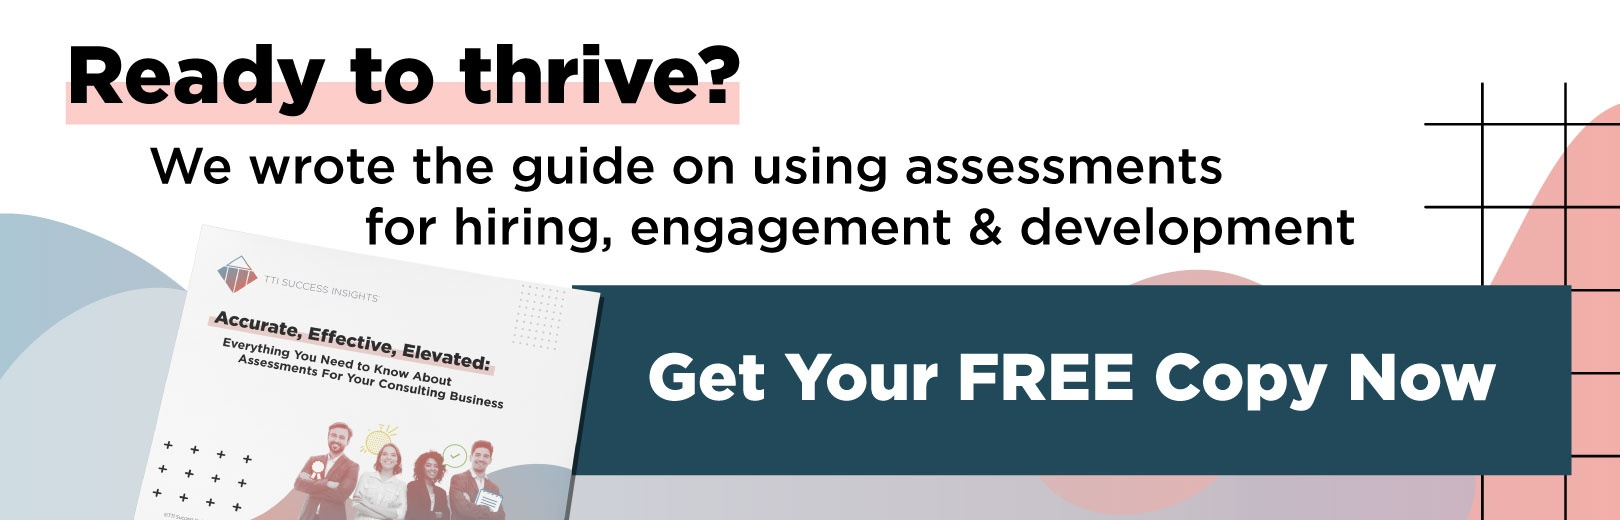 Ready to thrive? We wrote the guide on using assessments for hiring, engagement and development. Get Your FREE Copy Now